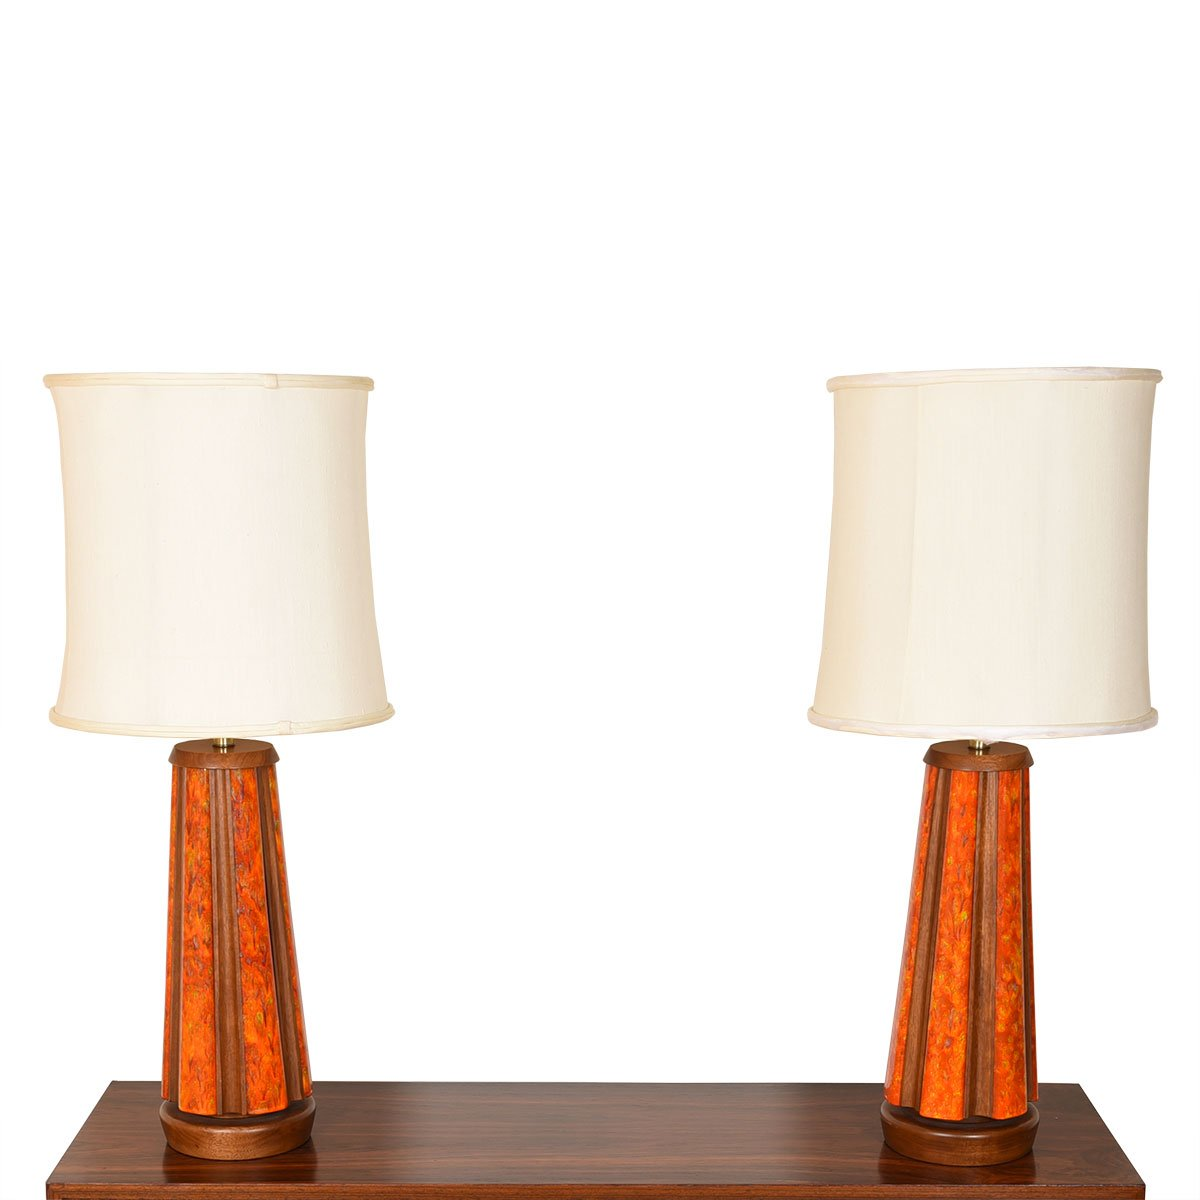 Pair of Decorative Pottery & Wood Accented Table Lamps